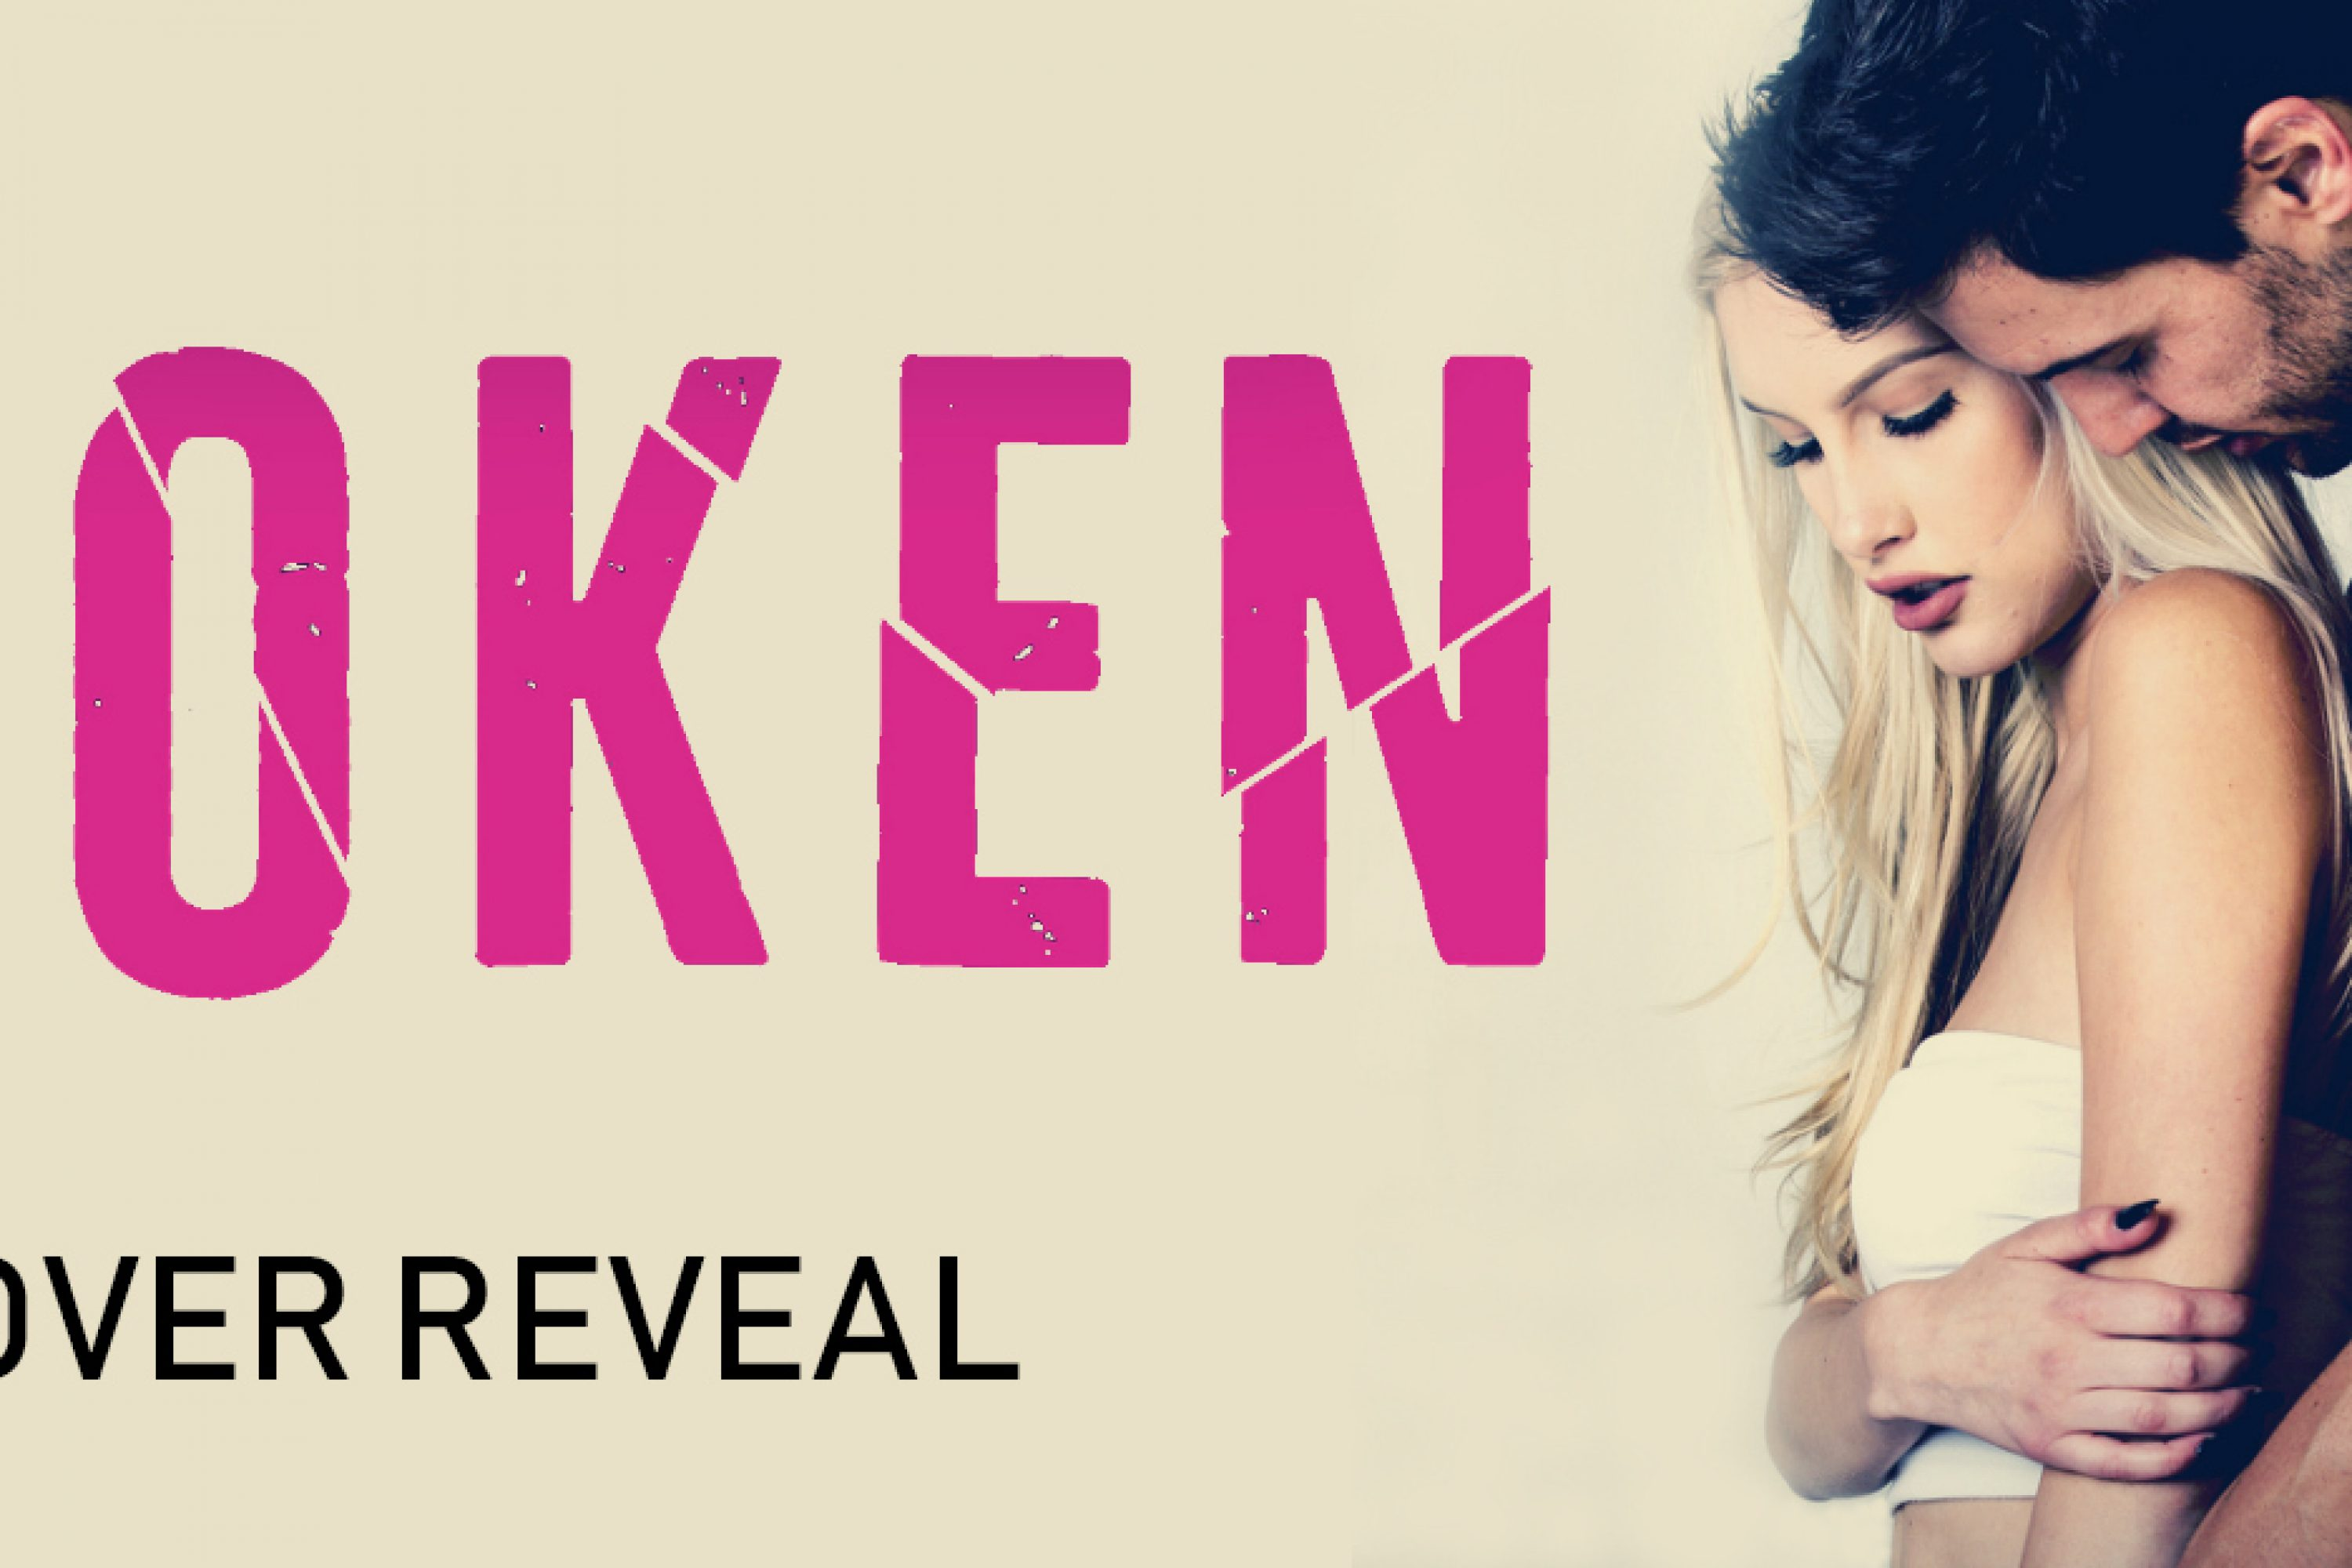 Cover Reveal: Broken by Crystal Kaswell